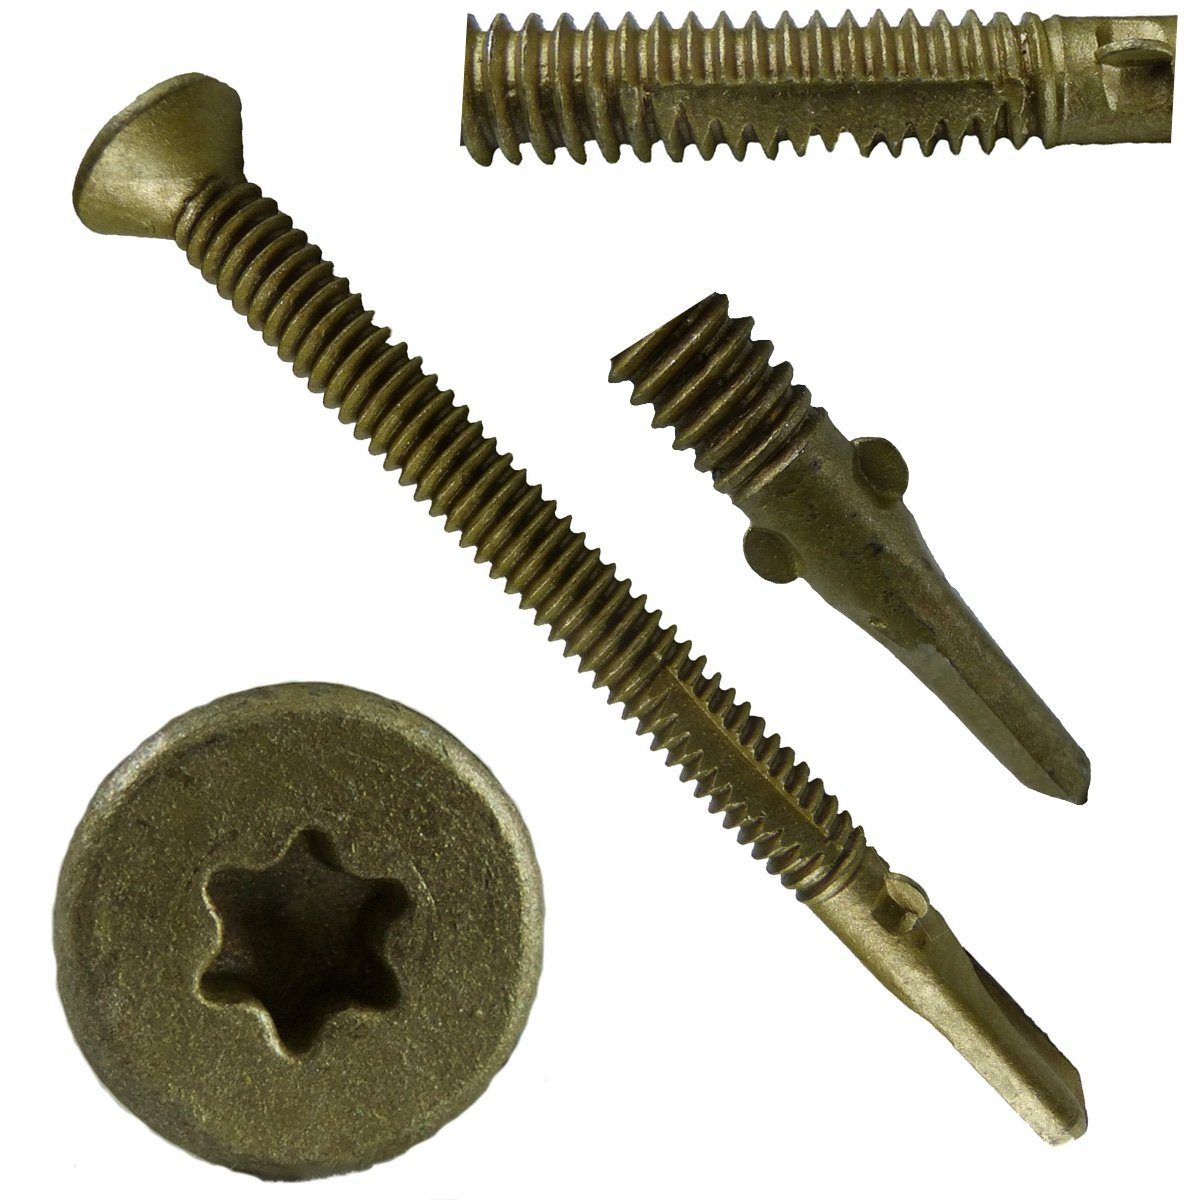 #14x2-3/4'' Reamer Tek Torx/Star Head Self-Drilling Wood to Metal Screws - 5 Pound (~170 Tek Screws) - Tek Screws for Flatbeds, Trailers, or where Fastening Wood to Steel - T-30 Torx Screw Head